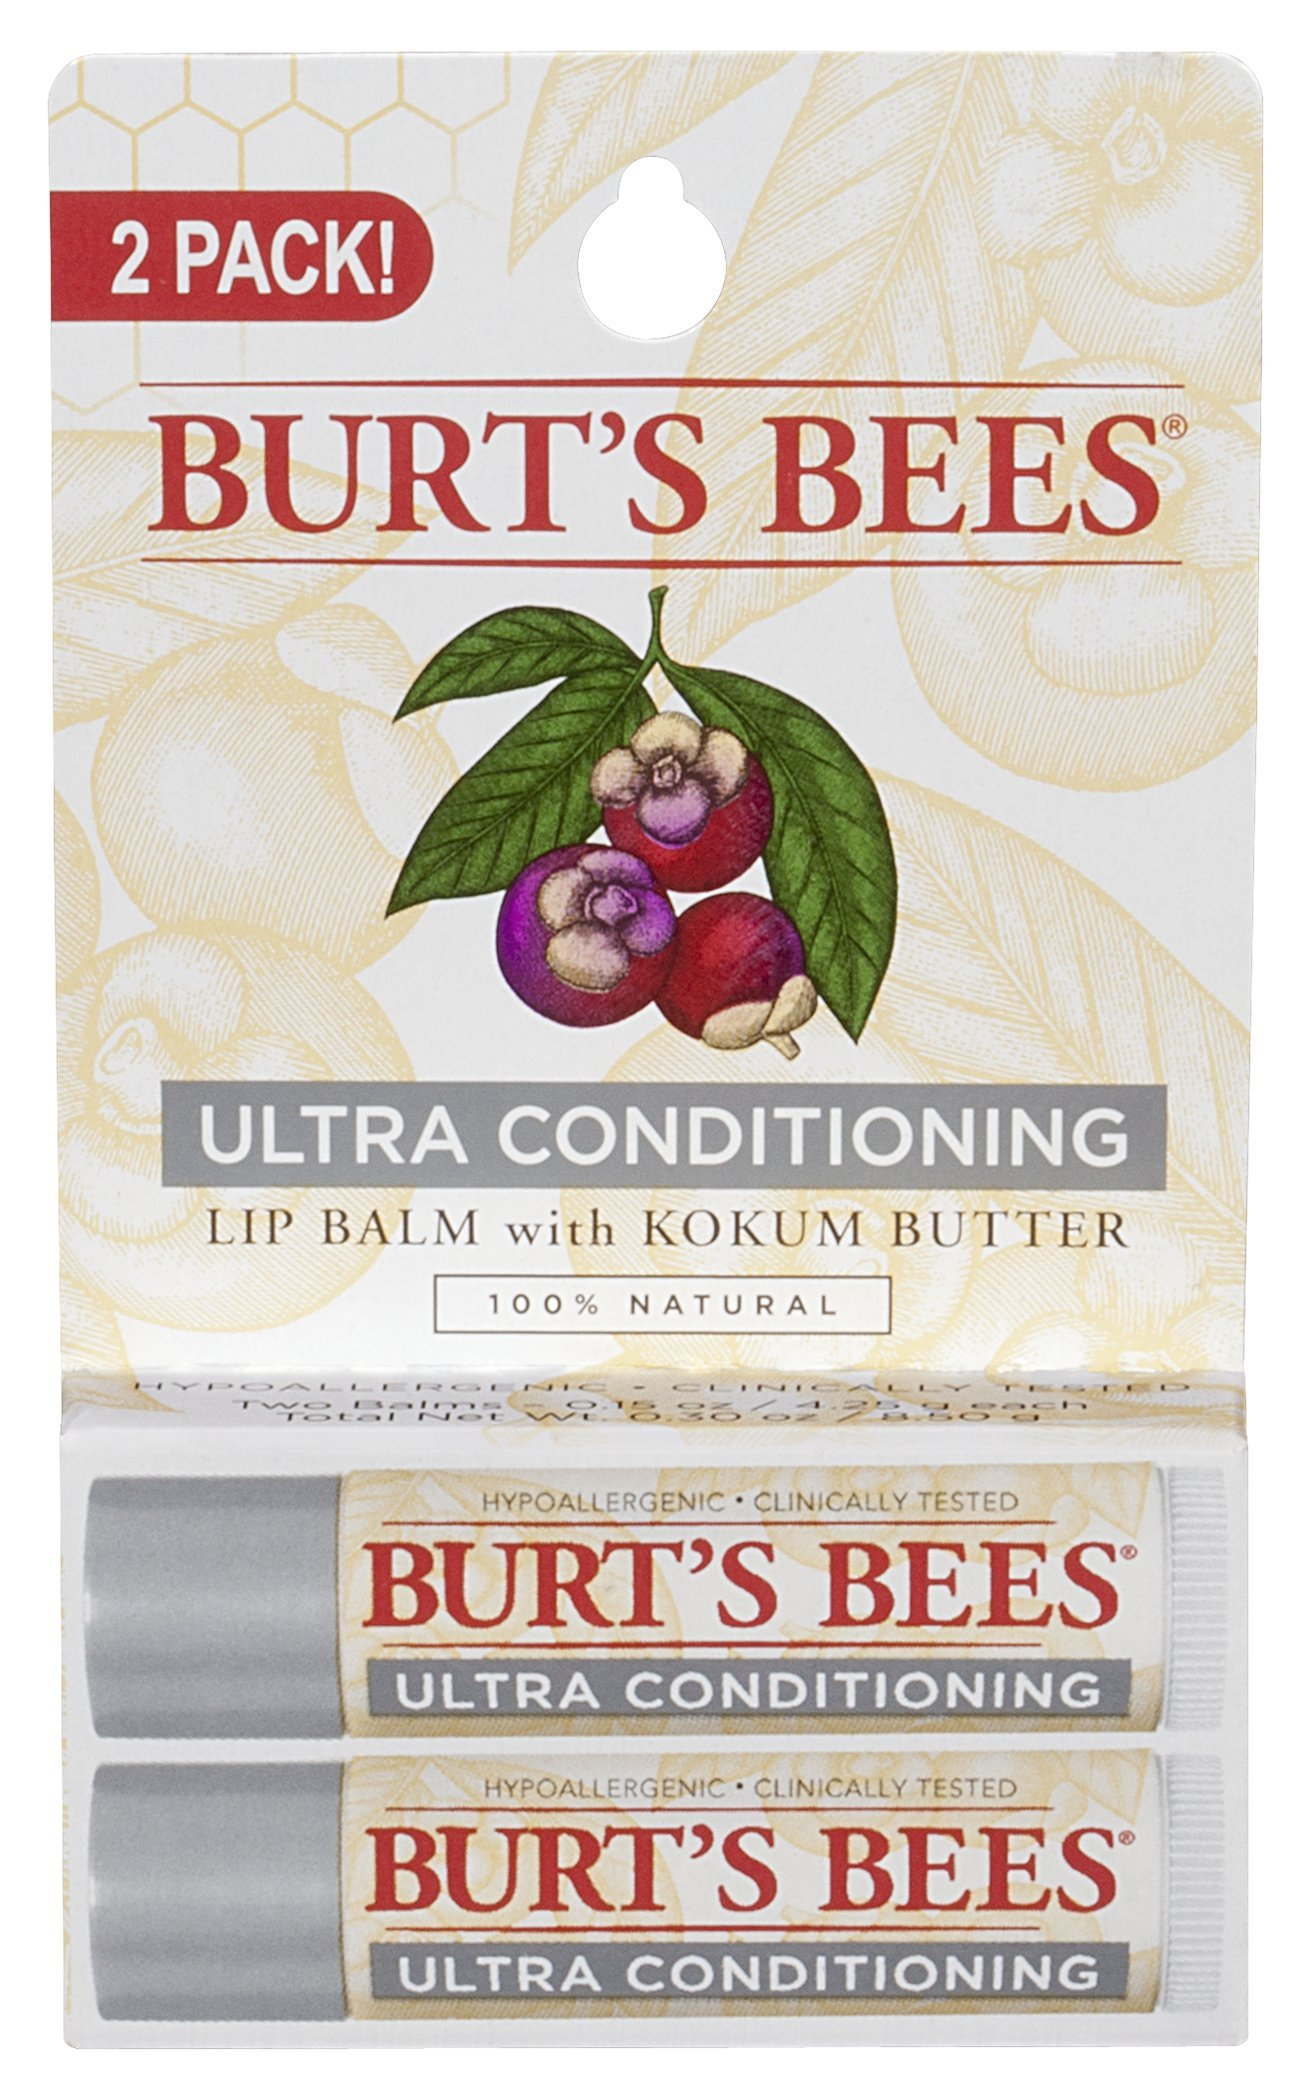 Burt's Bees 100% Natural Moisturizing Lip Balm, Ultra Conditioning with Kokum Butter, 2 Tubes in Blister Box